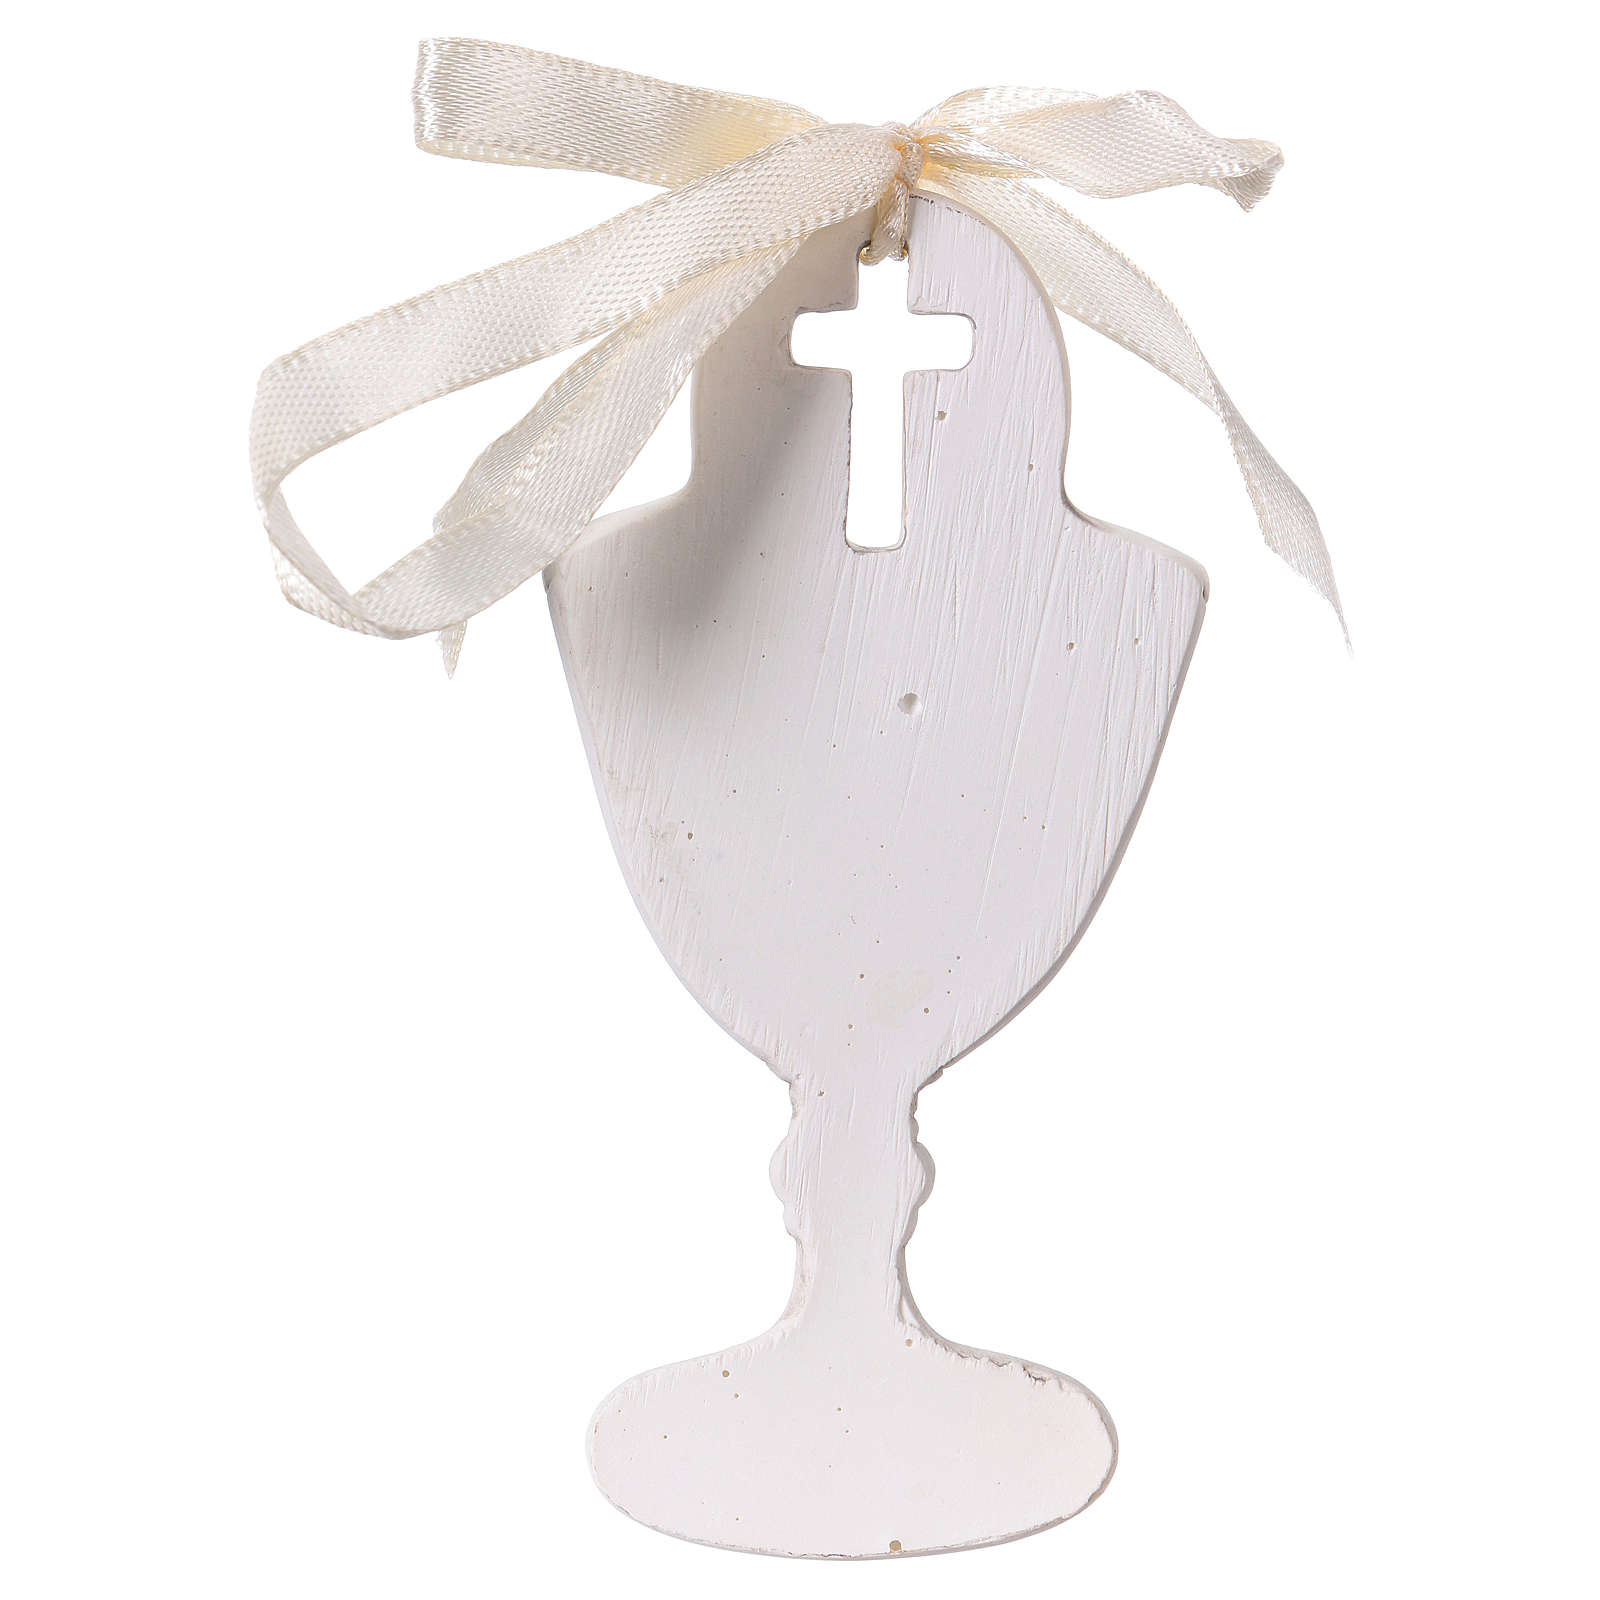 Goblet-shaped party favour with praying boy in resin 9 cm 3